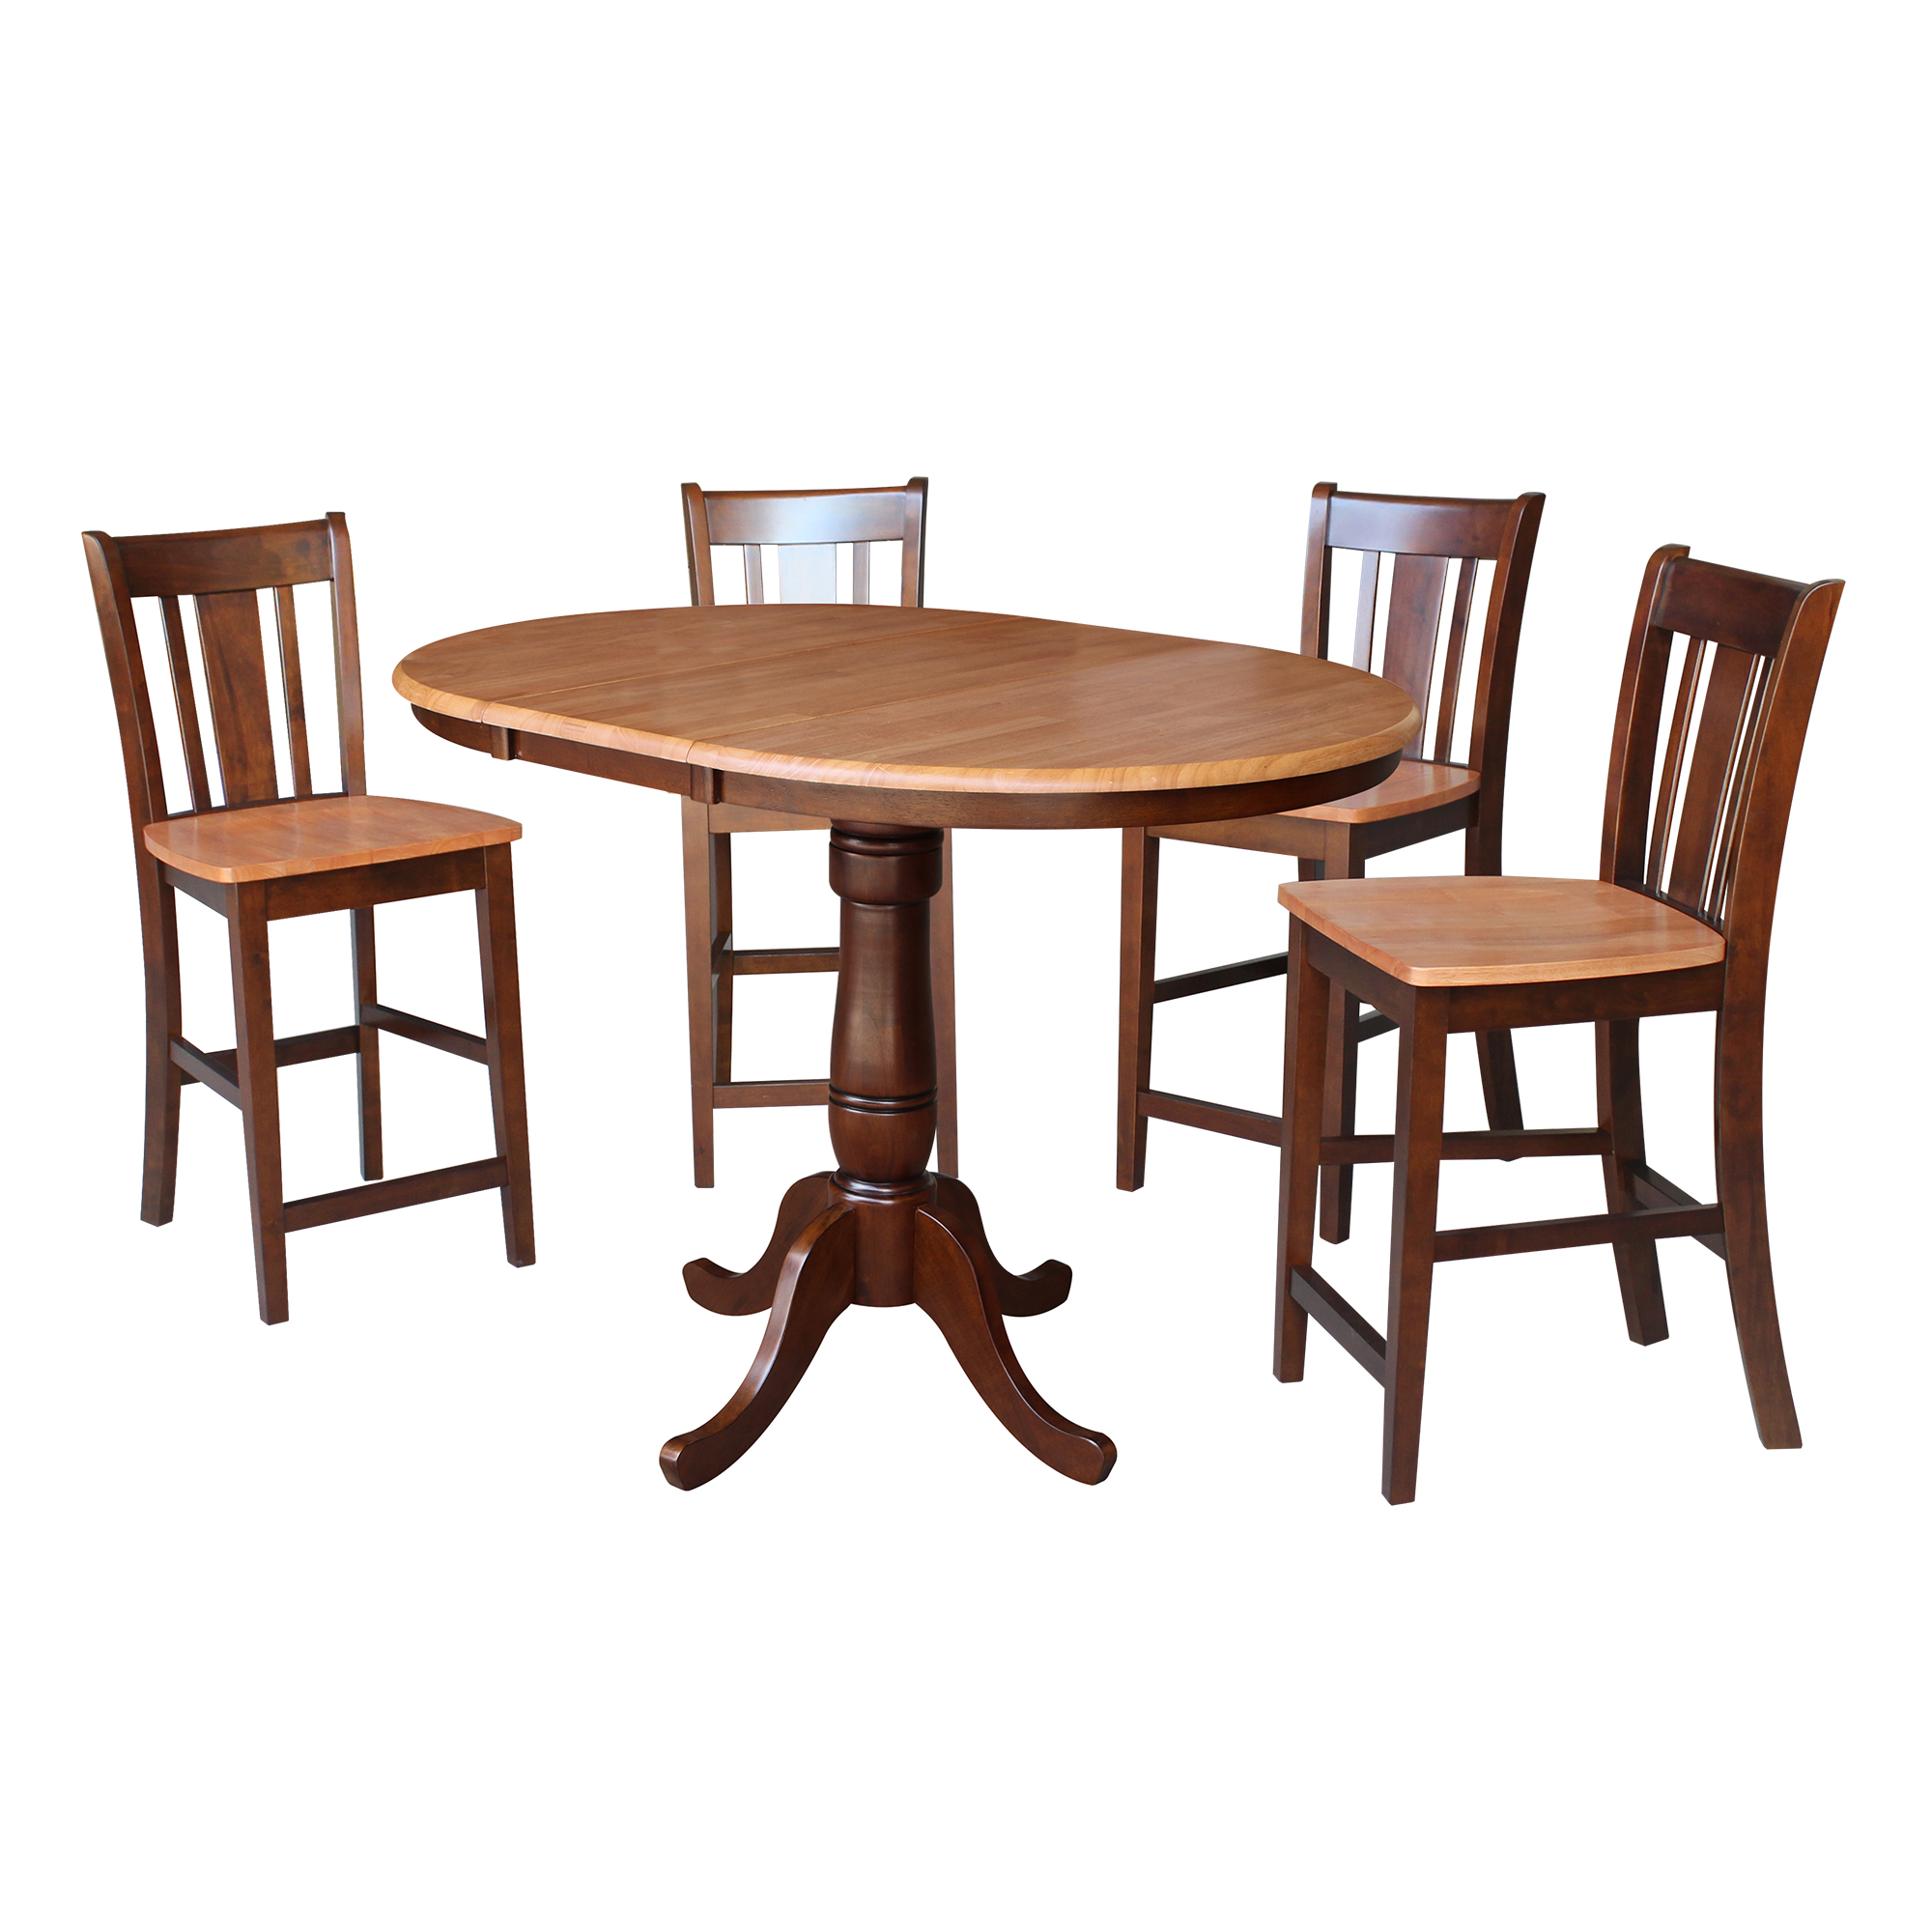 "36"" Round Counter Height Table with 12"" Leaf and 4 San Remo Stools – Cinnamon/Espresso - 5 Piece Set"